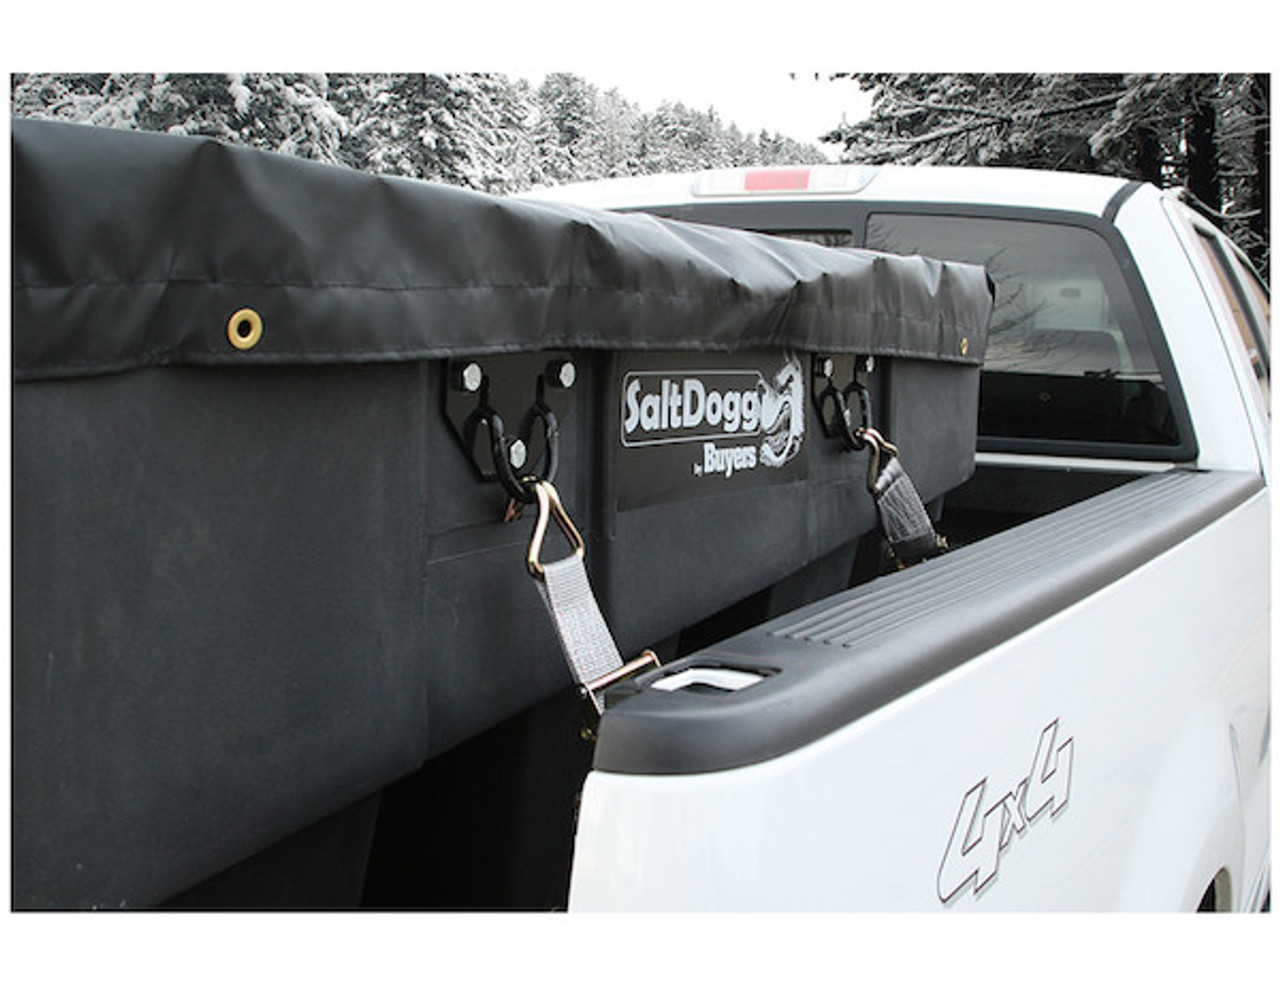 SHPE1000X BUYERS SaltDogg 1.0 Cubic Yard Electric Black Poly Hopper Spreader - Extended Chute 2